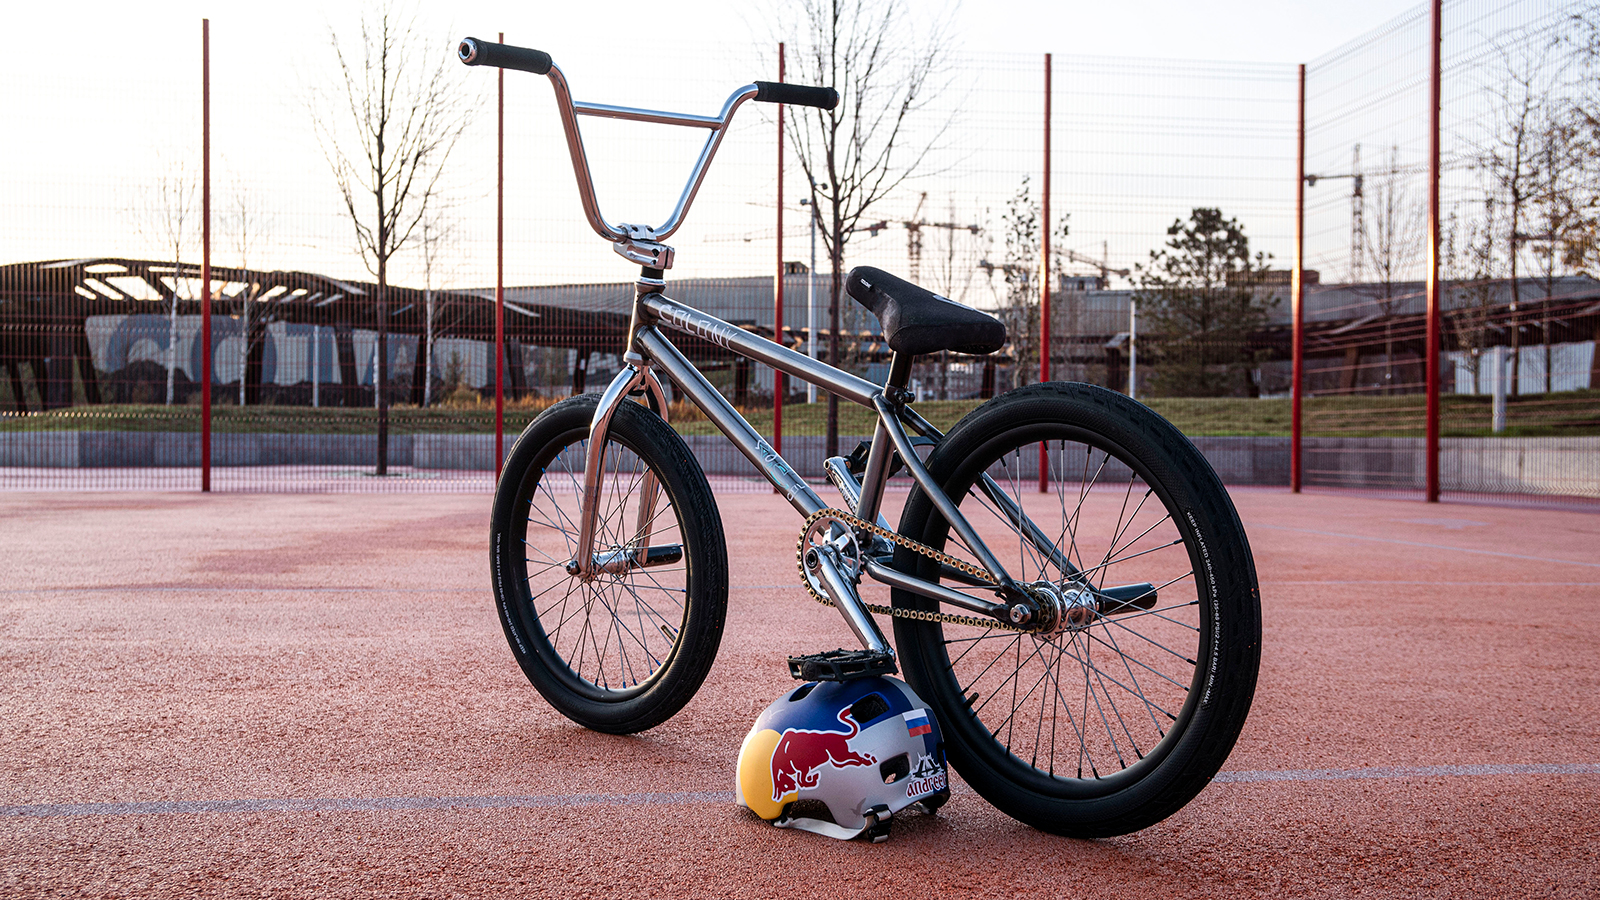 Konstantin Andreev Bike Check